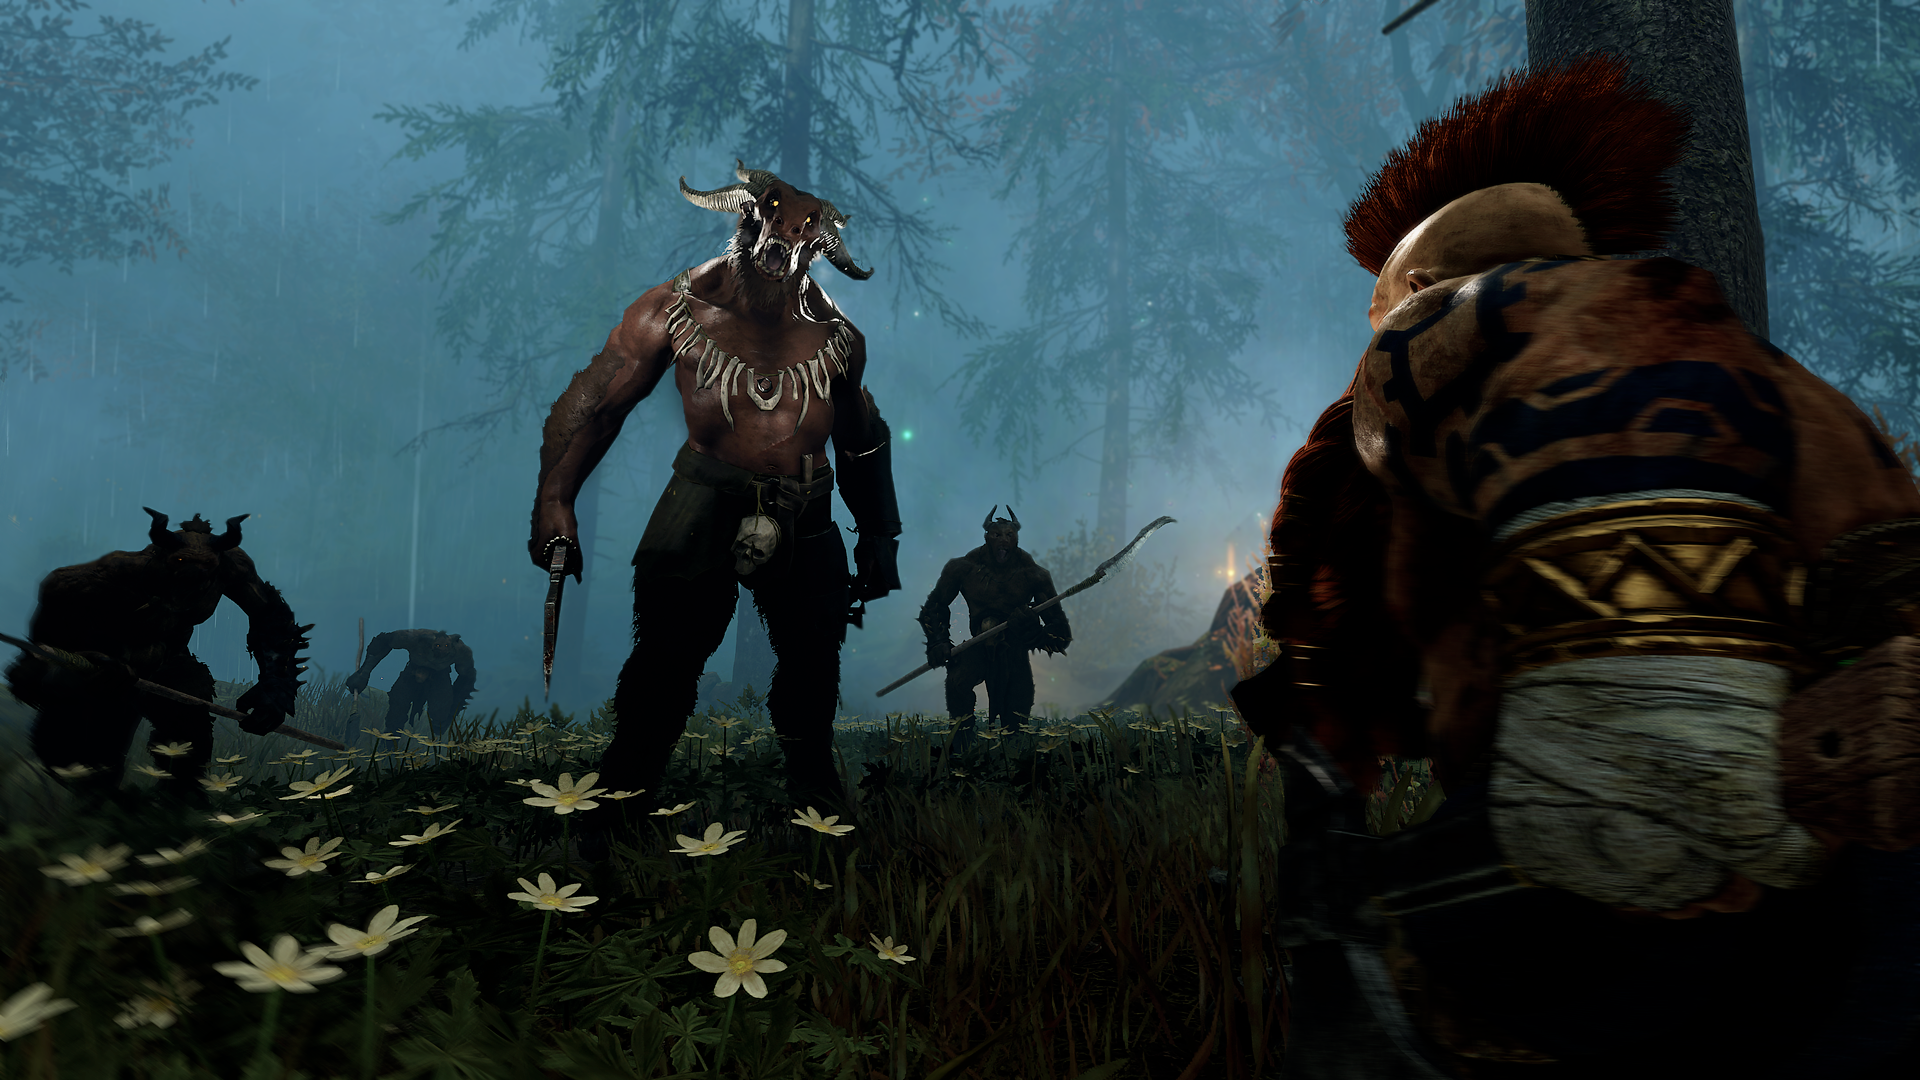 NEW ENEMY FACTION: BEASTMEN - As grotesque hybrids of humans and beasts the Beastmen have the intelligence of a man and the cunning of wild animals. These savage warriors embrace Chaos willingly and will show no compassion or nobility. With profound malice for order and reason, these Children of Chaos want to end the world in bloody carnage.